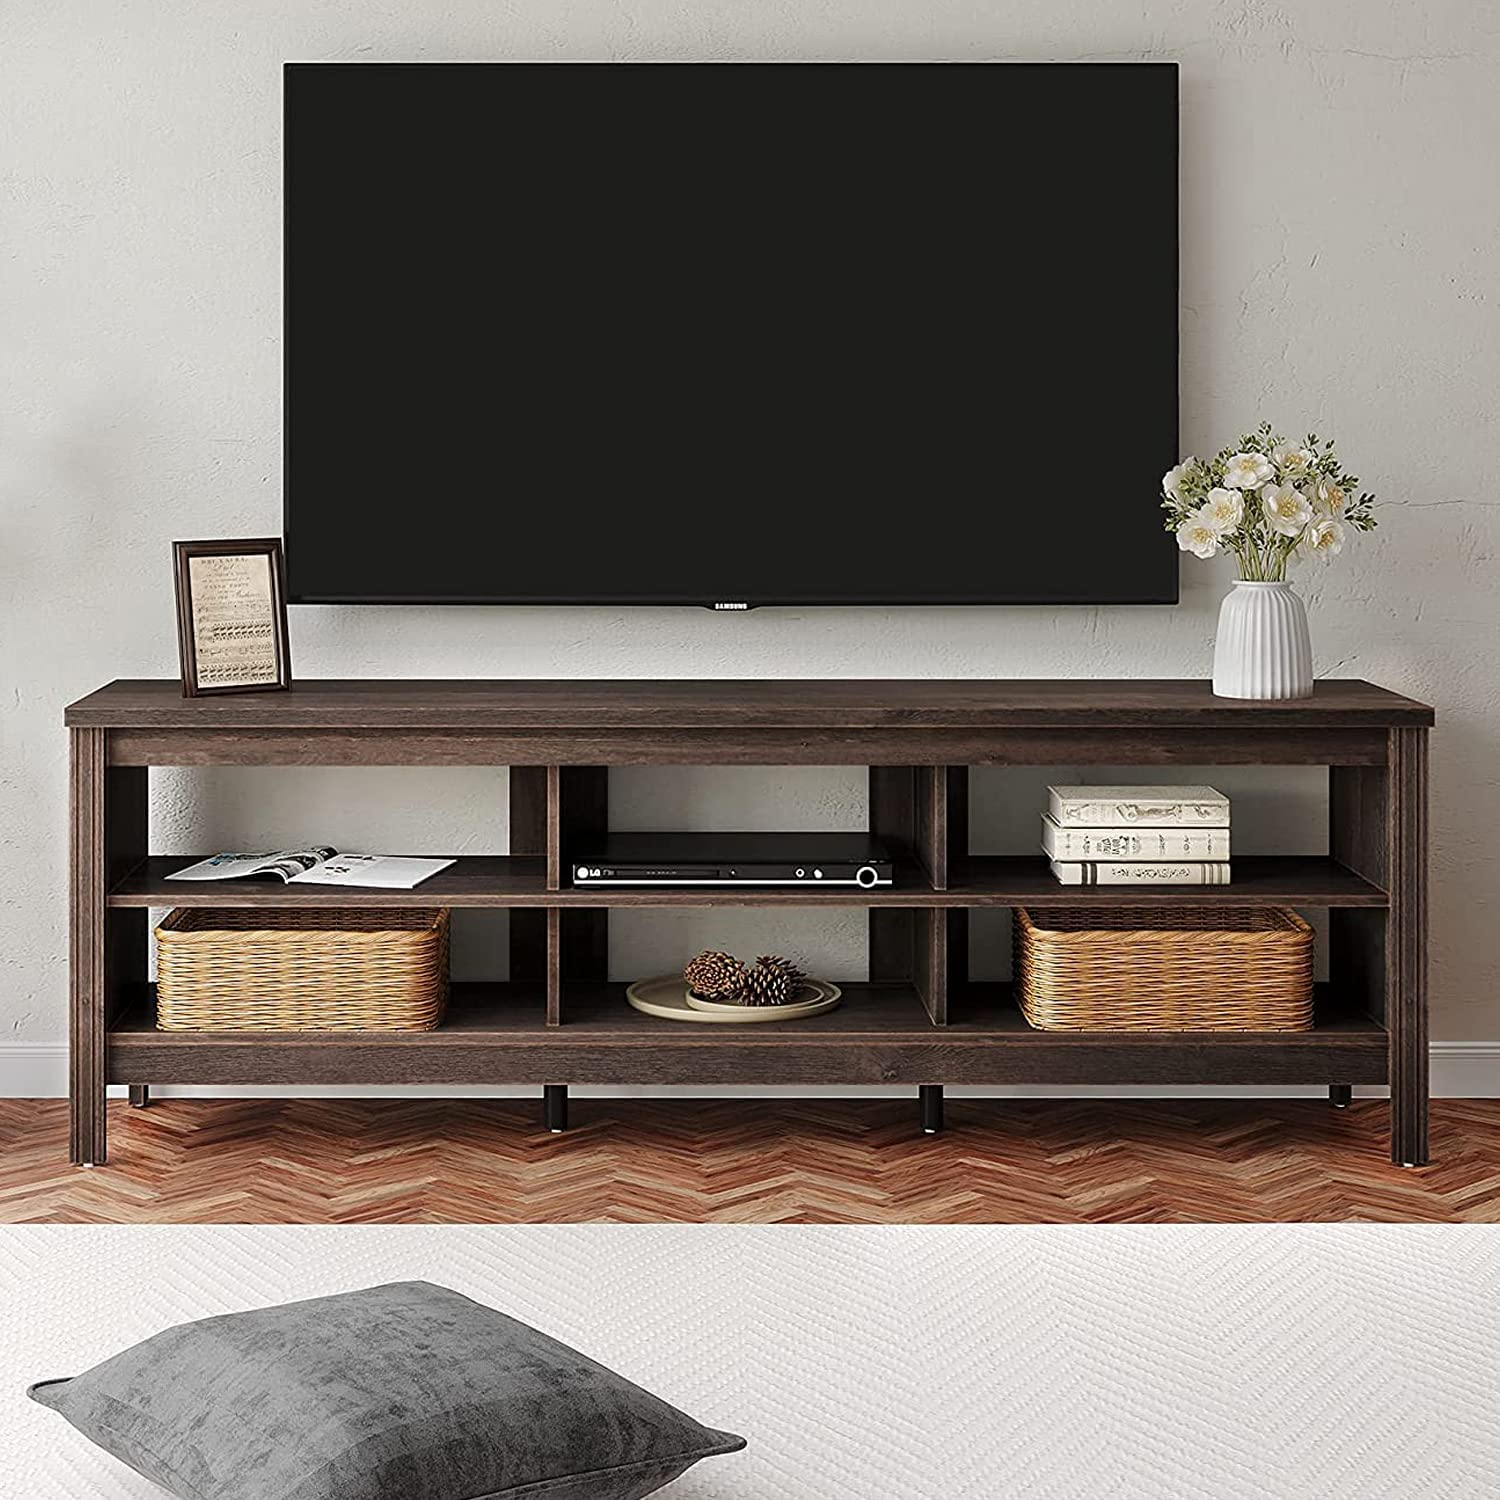 FITUEYES Farmhouse TV Stand for 75 Century 結婚祝い Mid Flat 国内正規総代理店アイテム inch Screen